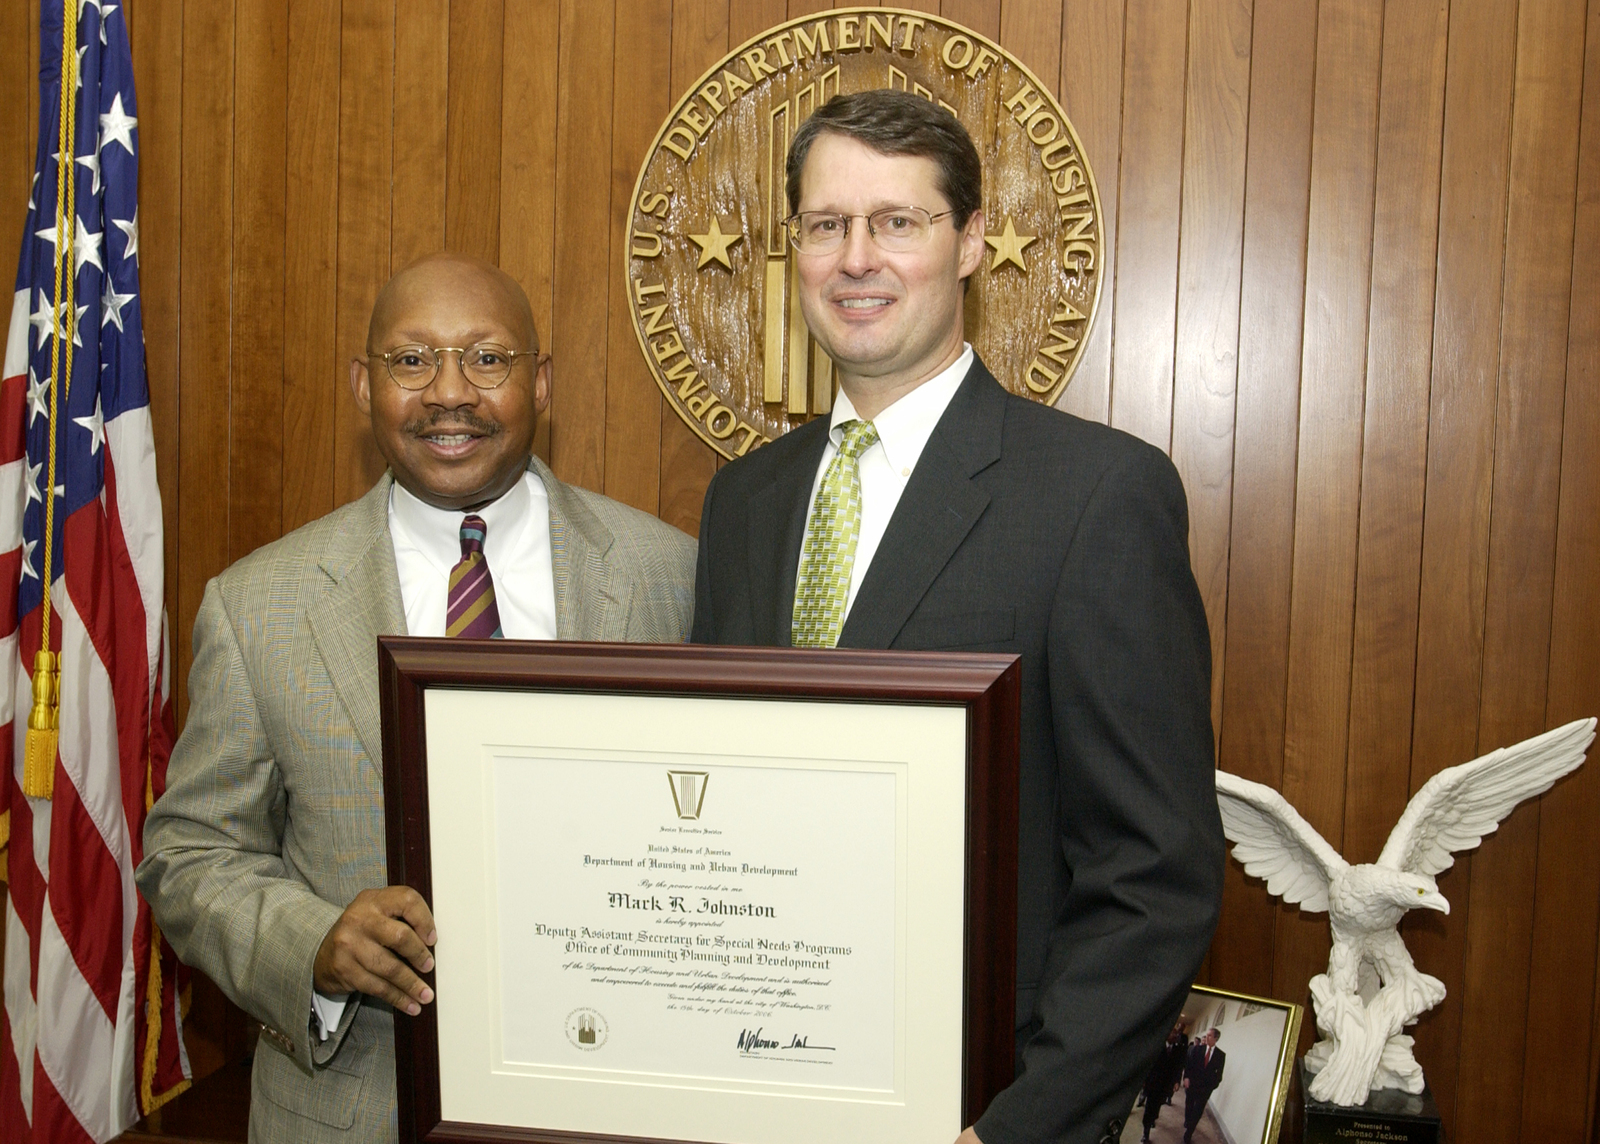 Secretary Alphonso Jackson with Mark Johnston - Mark Johnston, Deputy Assistant Secretary for Special Needs Programs in the Office of Community Planning and Development, receiving appointment certificate from Secretary Alphonso Jackson, HUD Headquarters